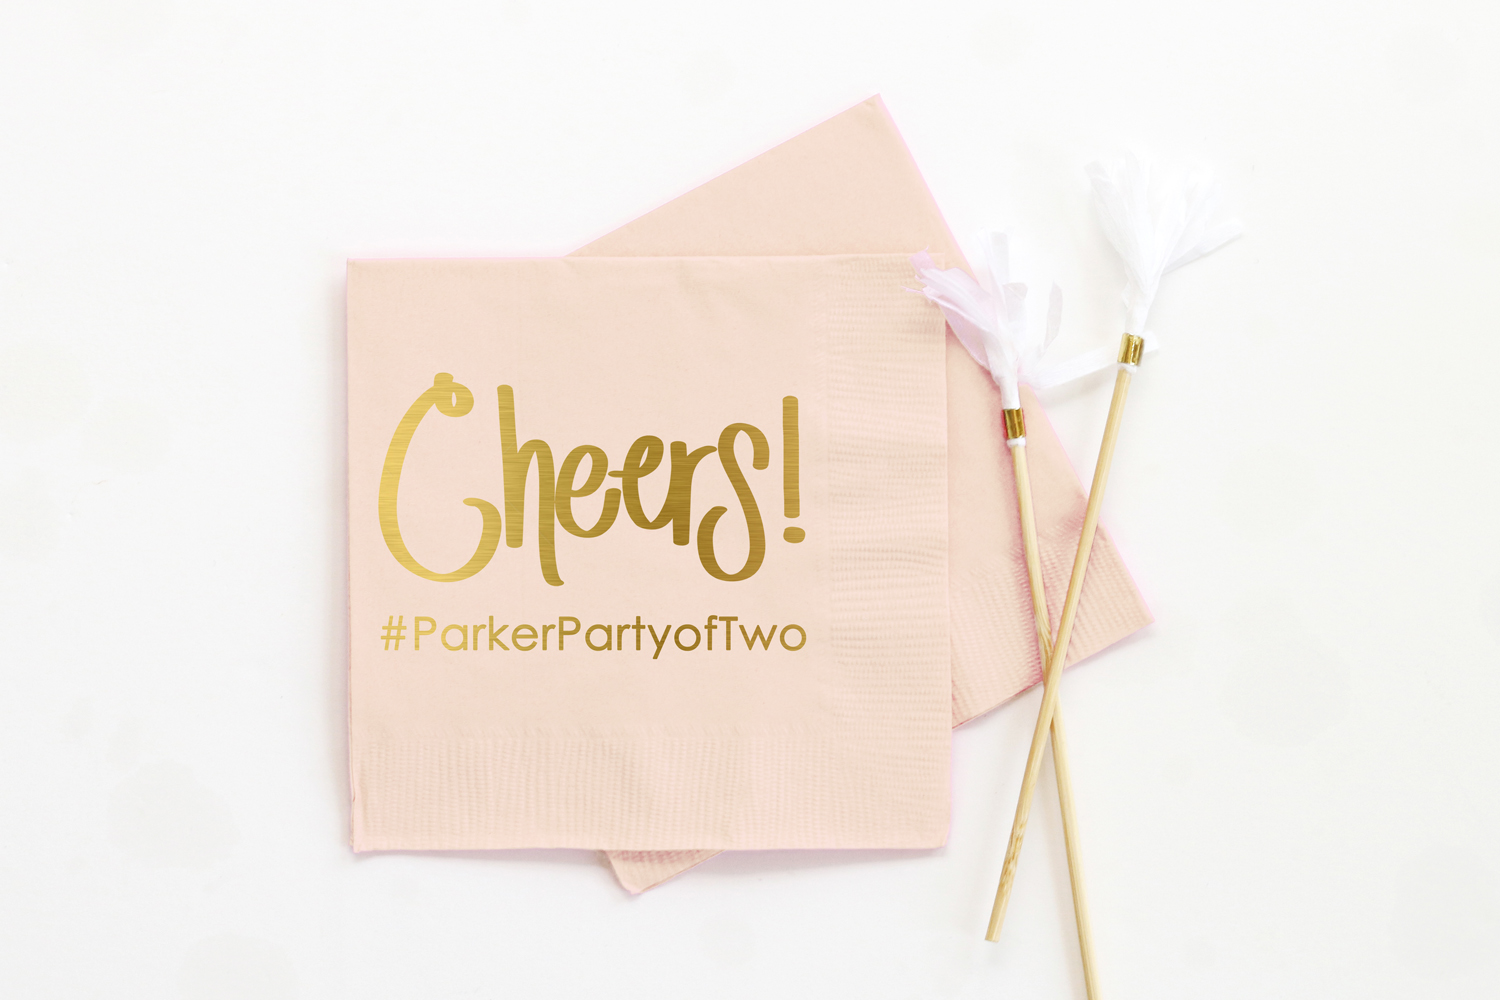 Cheers Wedding Napkins When It Rains Paper Co Colorful And Fun Paper Goods Office Supplies And Personalized Gifts